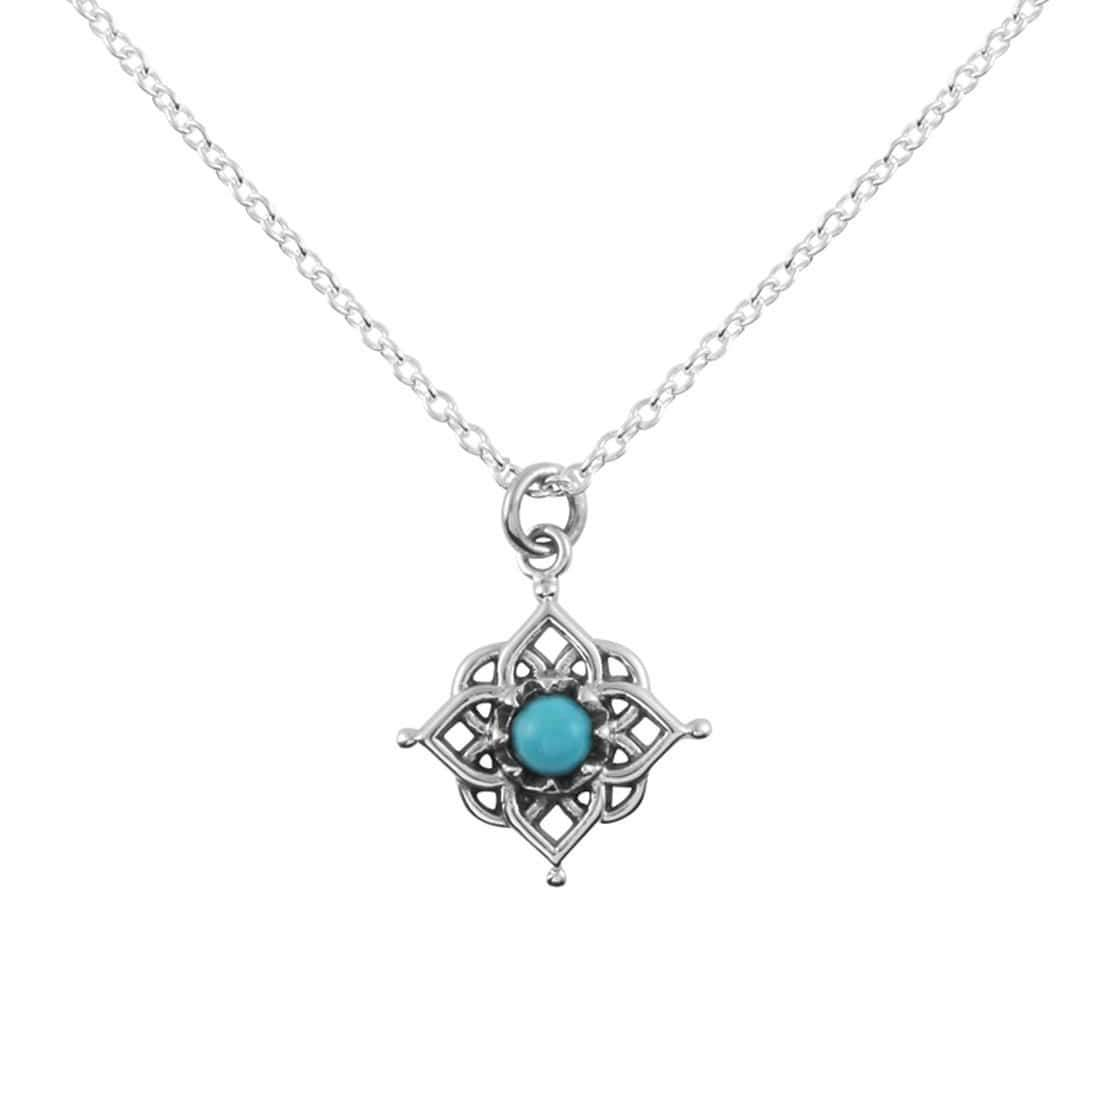 Midsummer Star Necklaces Cosmic Mandala Turquoise Necklace